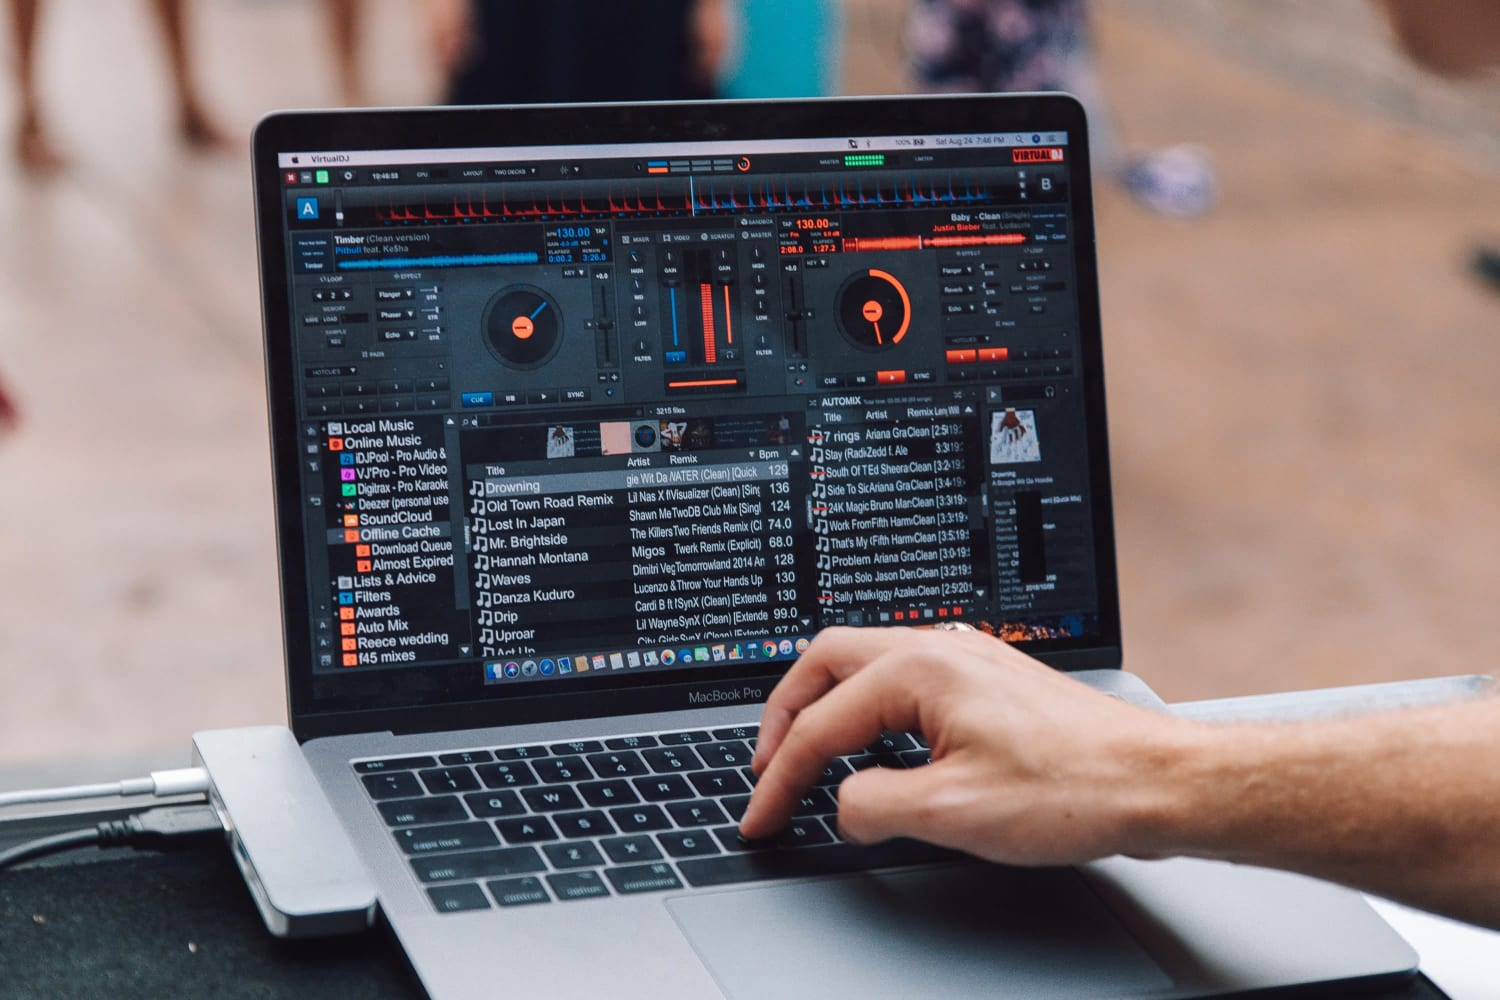 big-sur-is-a-big-problem-for-music-producers-and-djs-202021117-1